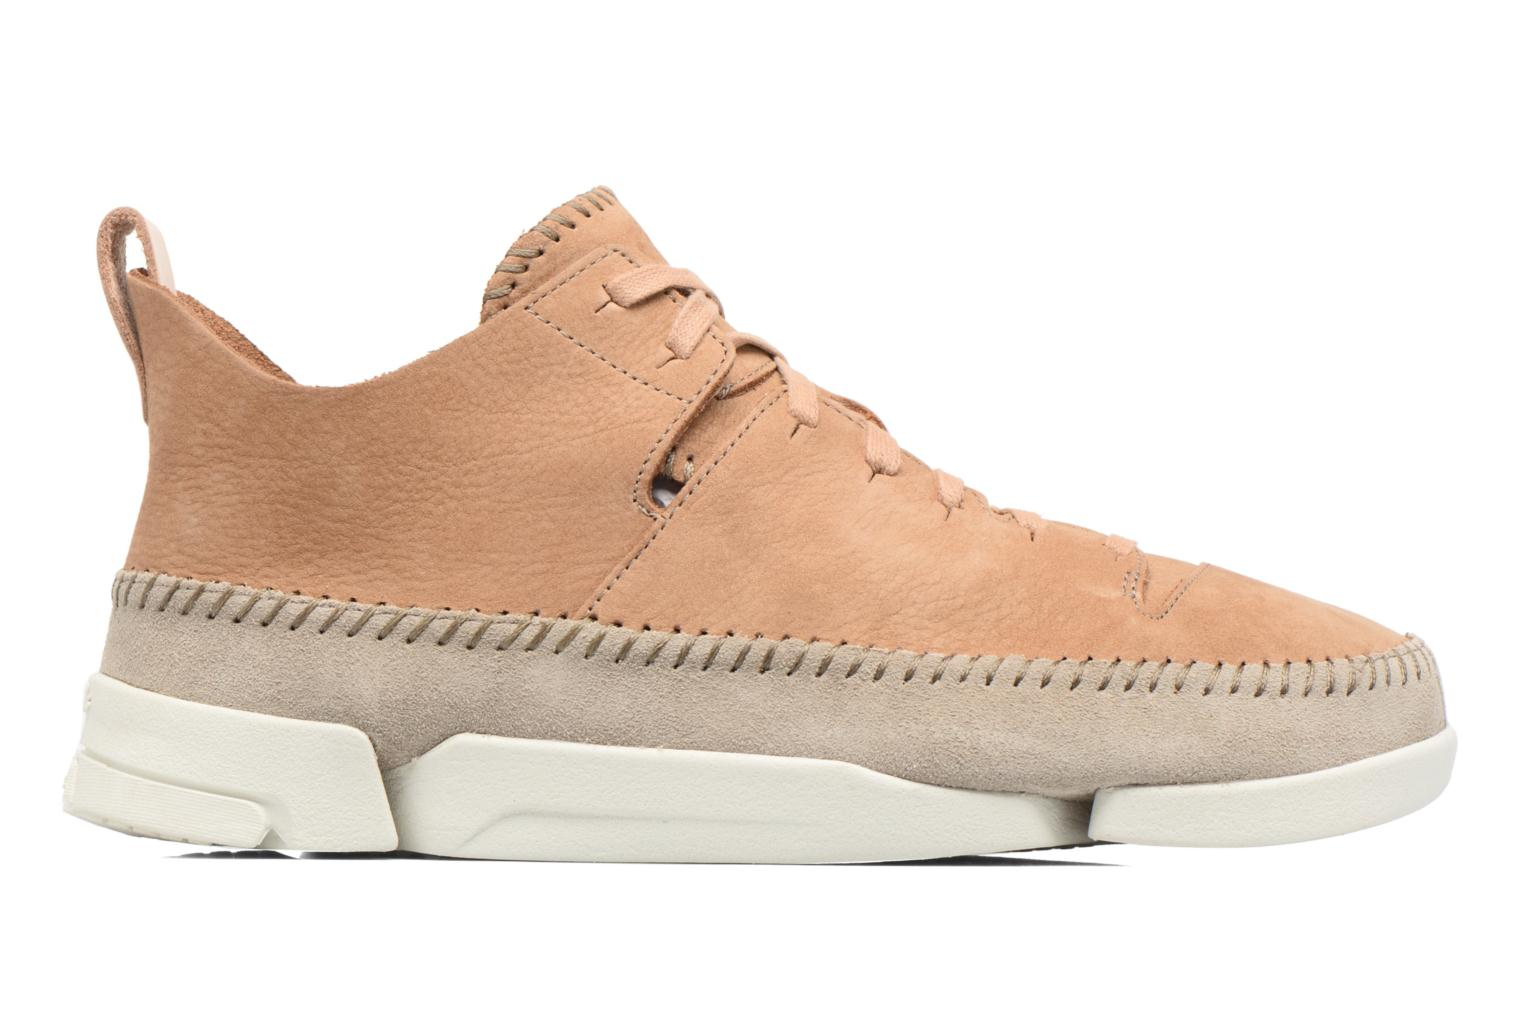 Baskets Clarks Originals Trigenic Flex M Marron vue derrière